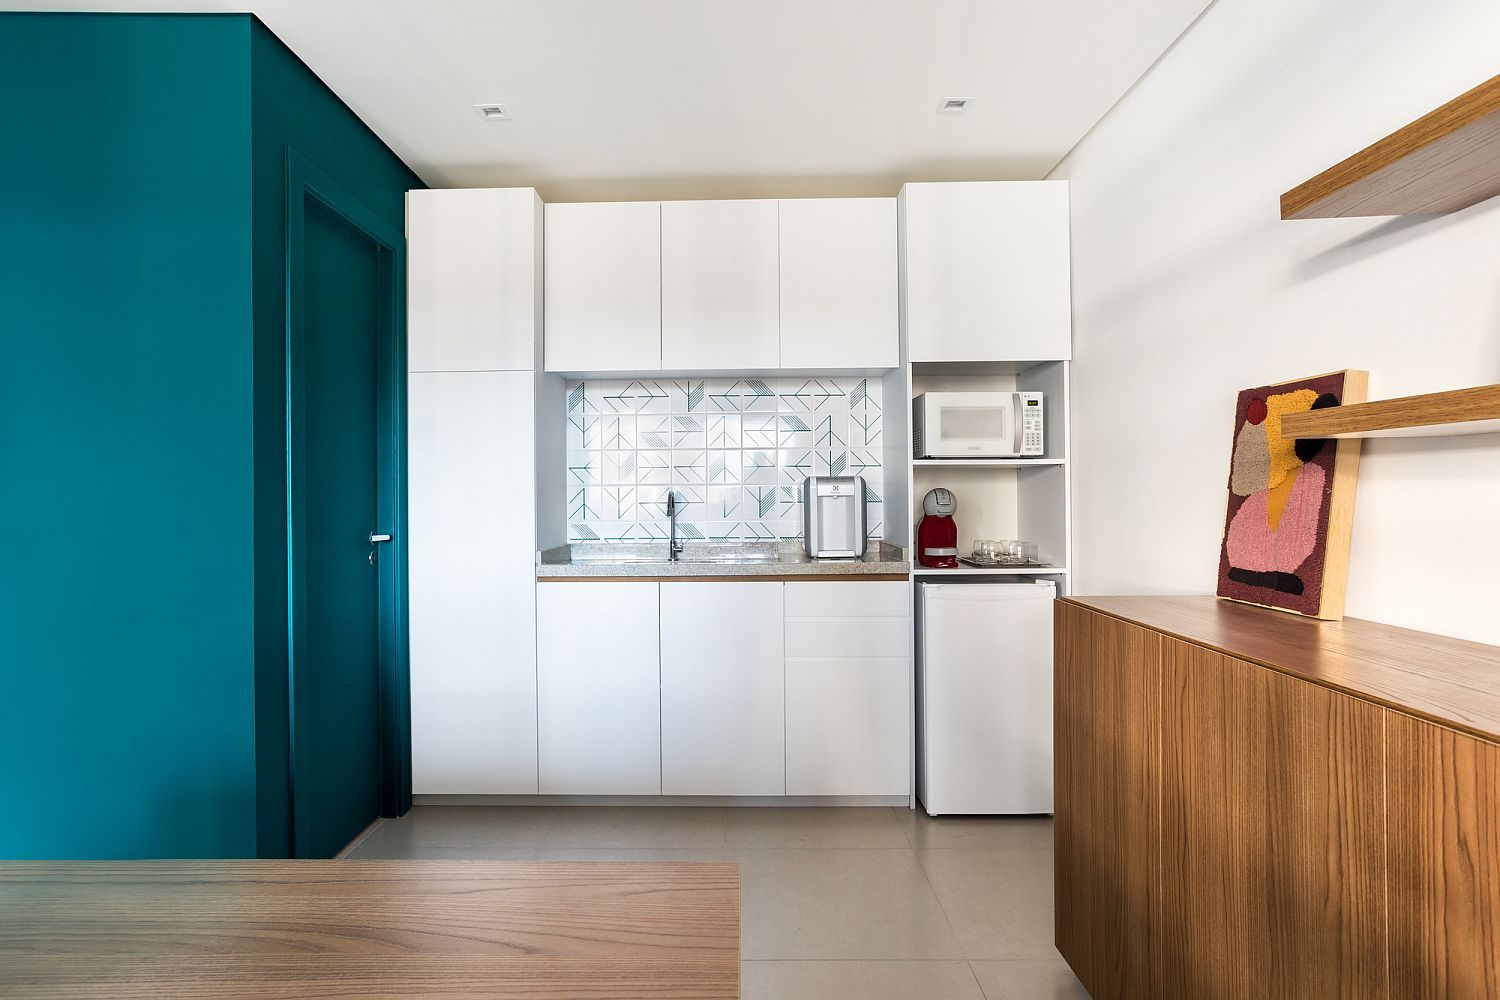 Functional kitchen and spacious workspaces inside the office